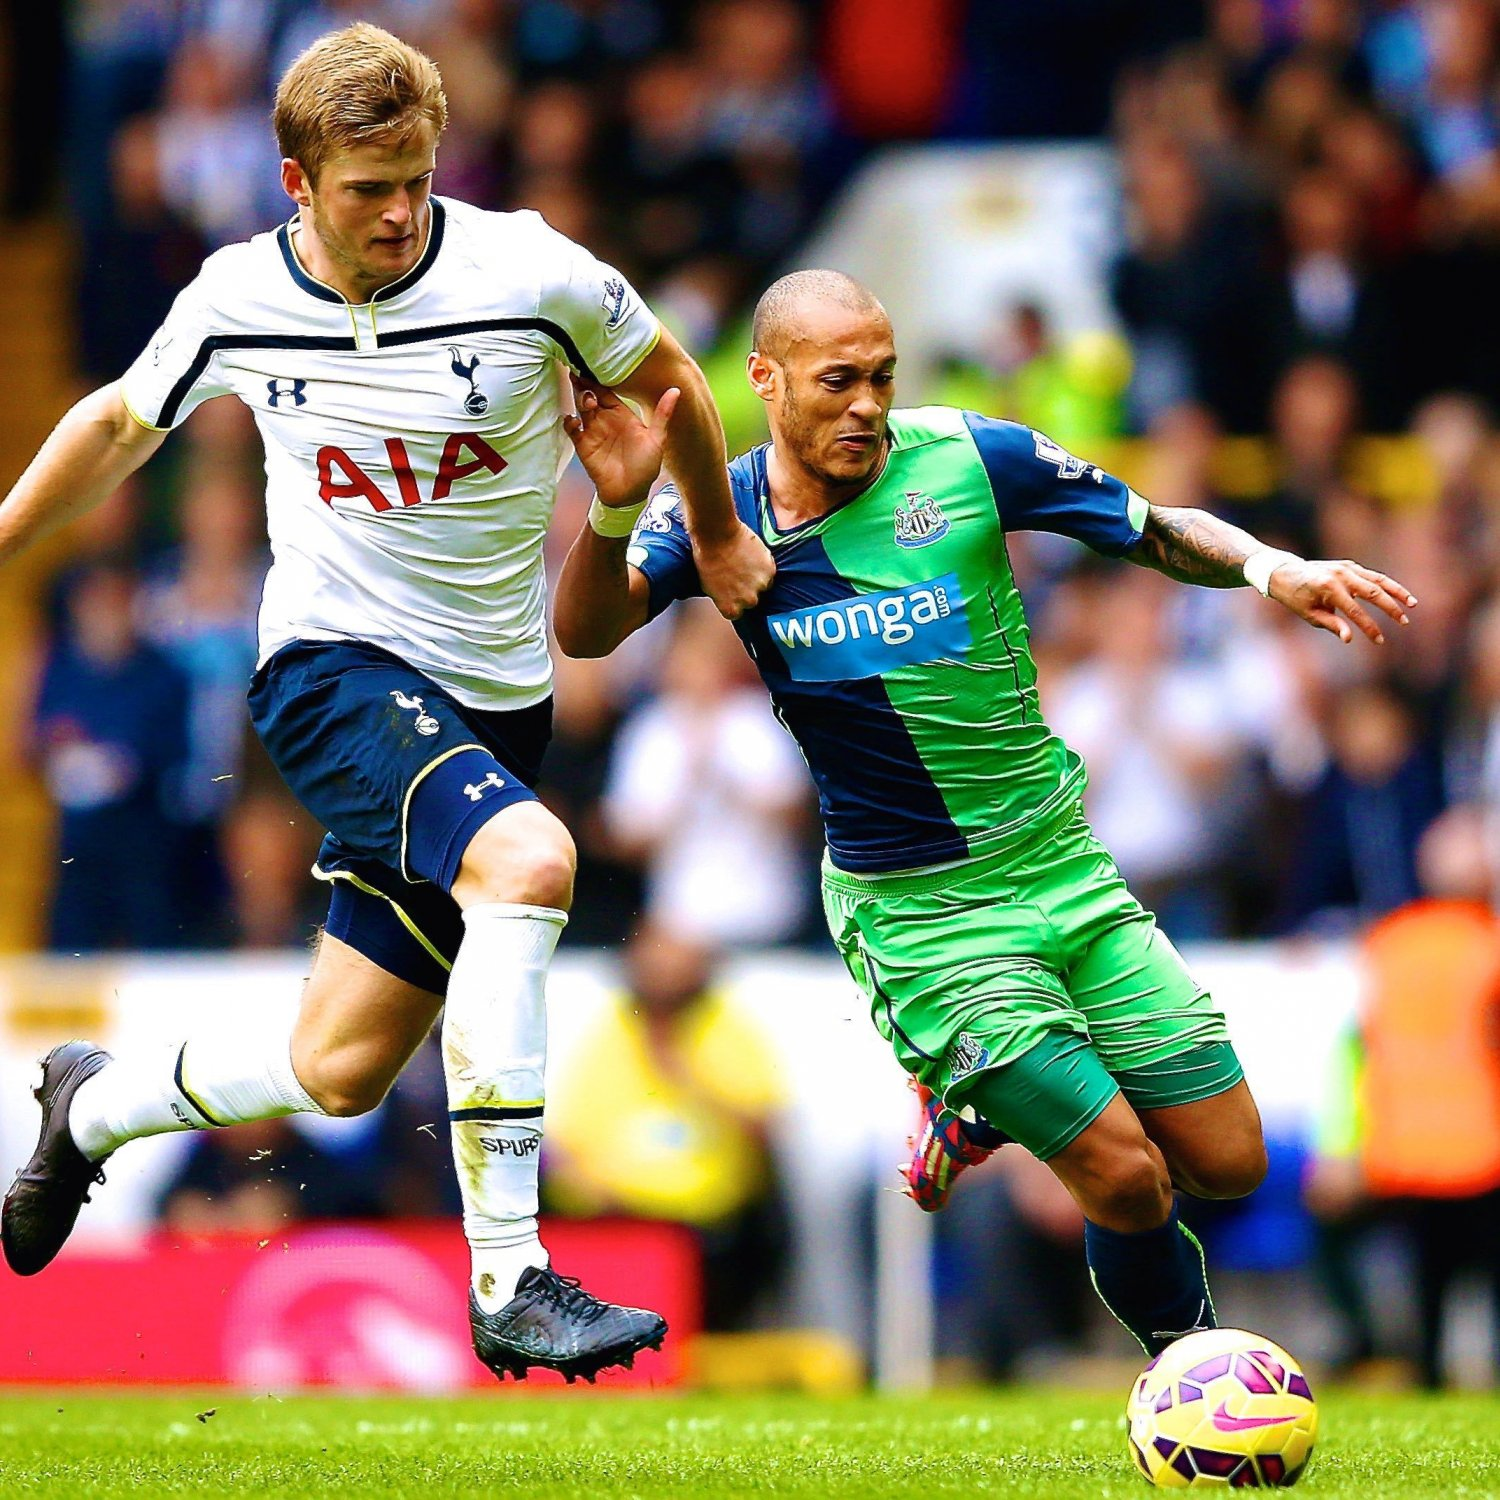 tottenham vs newcastle - photo #50